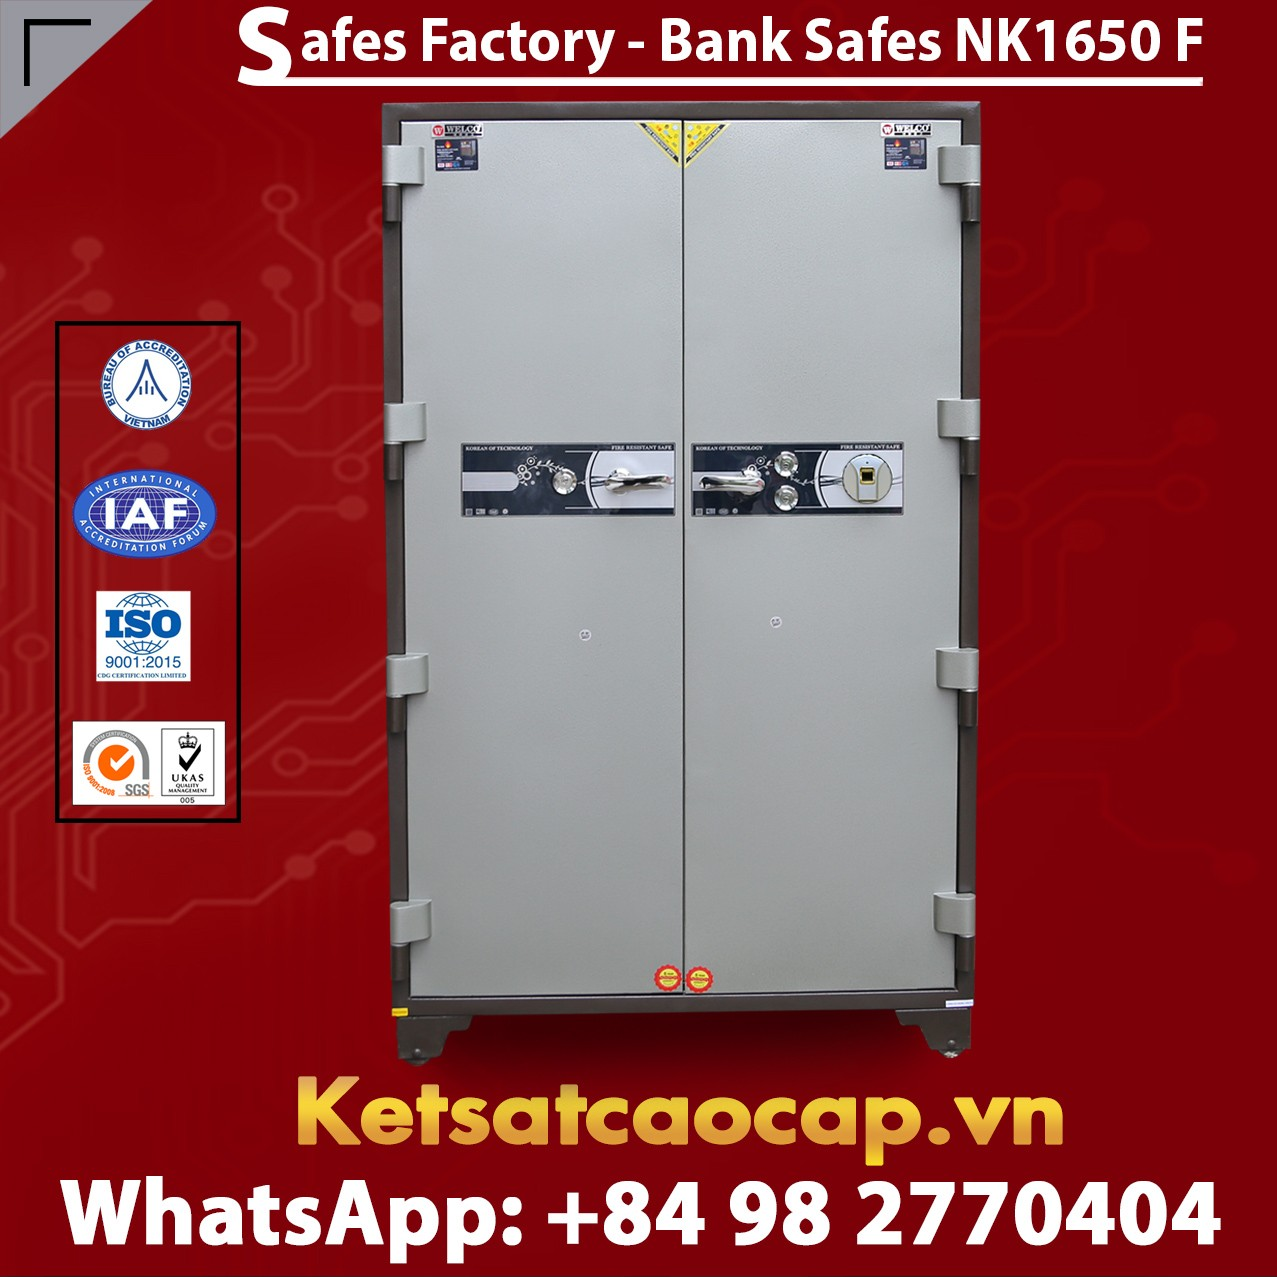 Bank Safe NK 1650 F Hot Sale Design - Modern Mechanical Locking System